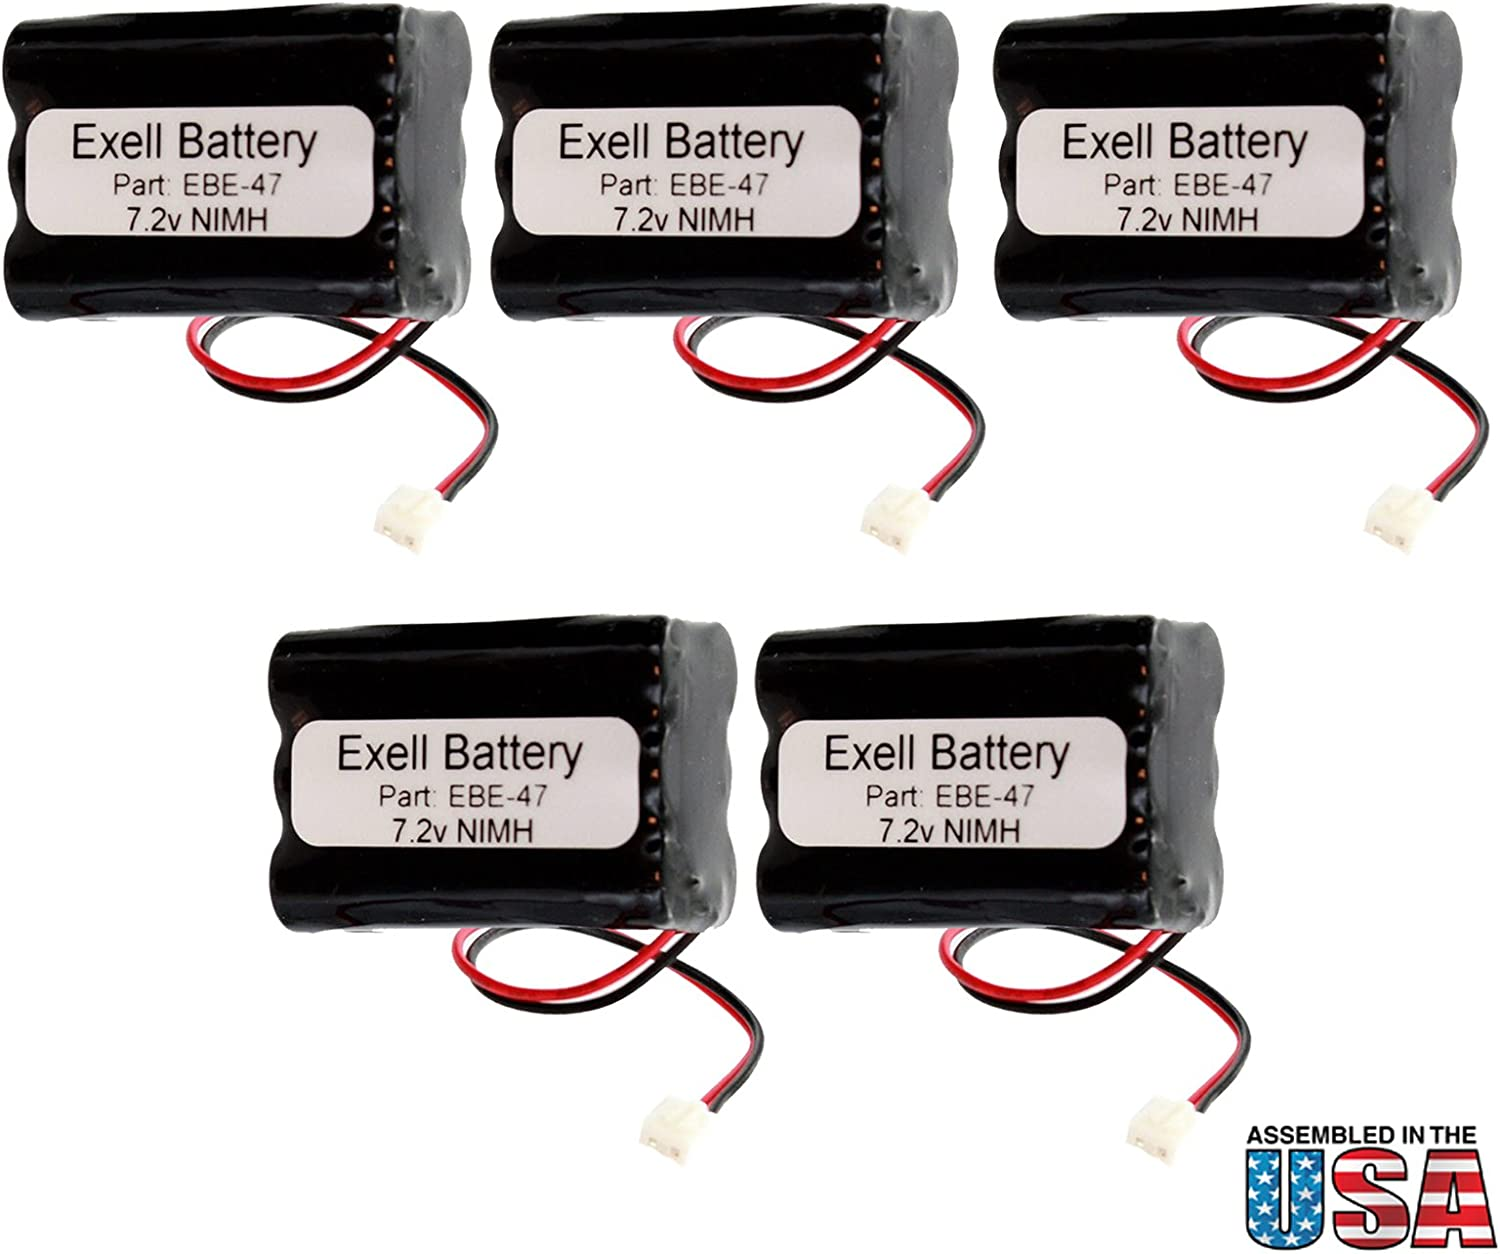 (5-Pack) Emergency/Exit Exit Sign Lighting Battery Fits and Replaces Sanyo 34051, Sanyo 6HRAAAU, Sanyo 6HRAAAU34051 Interstate ANIC0191, Iti 34-051 Fast USA Ship 71CaTtzpynLSL1500_